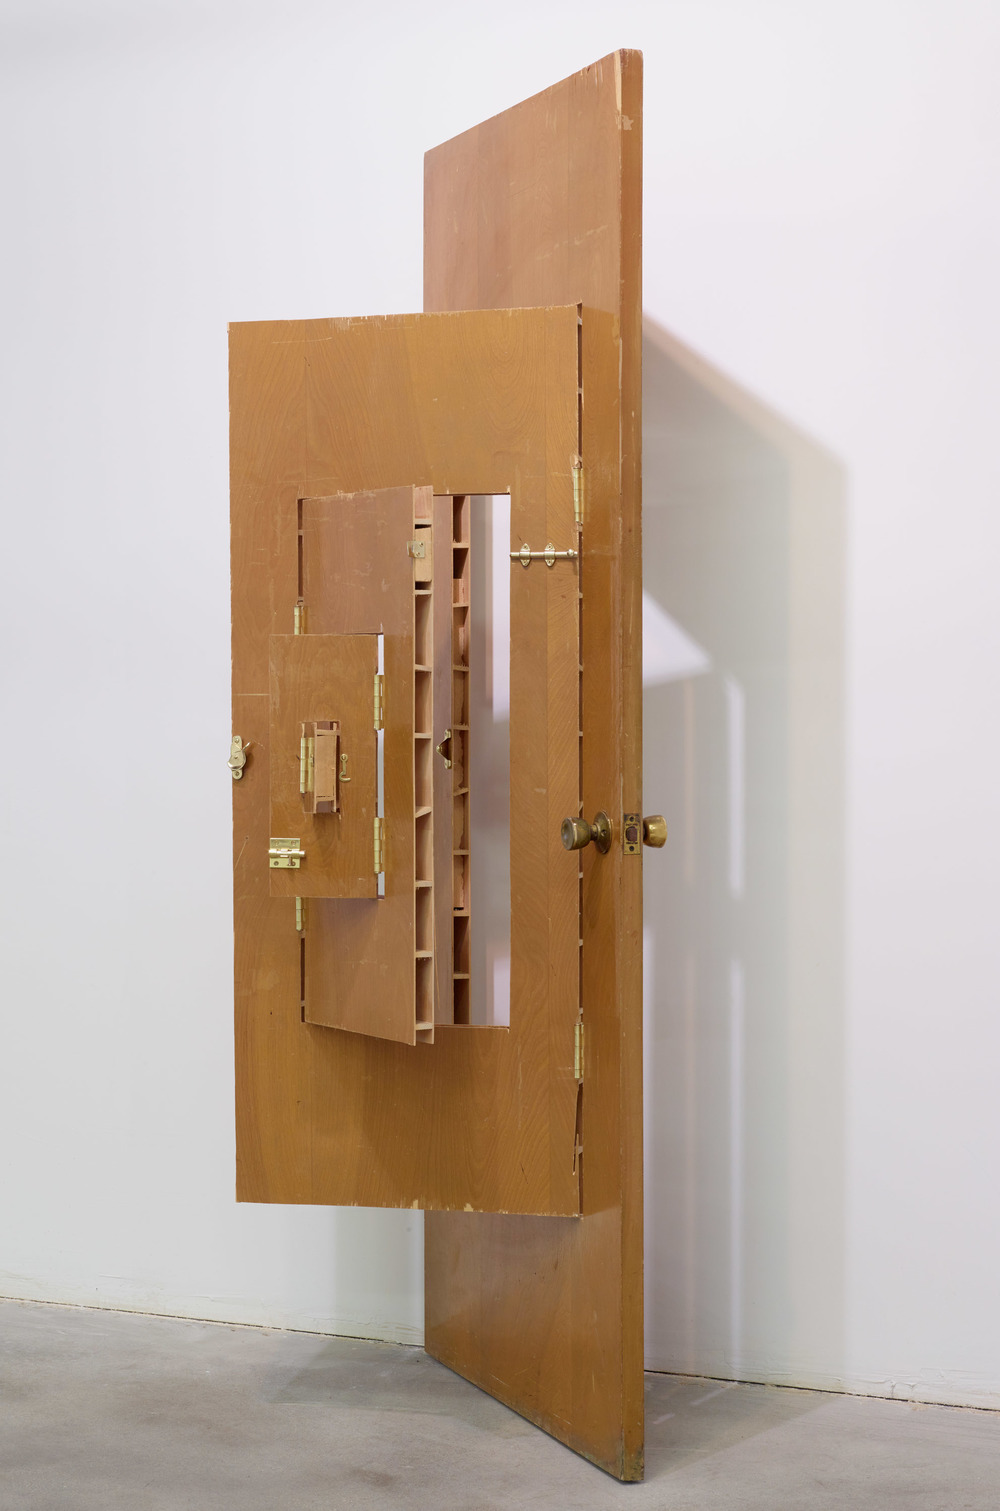 Joshua Callaghan  ,    Door #1   , 2010.   Modi ed door, wood, hardware, 79.5 x 31.75 x 6 inches folded.